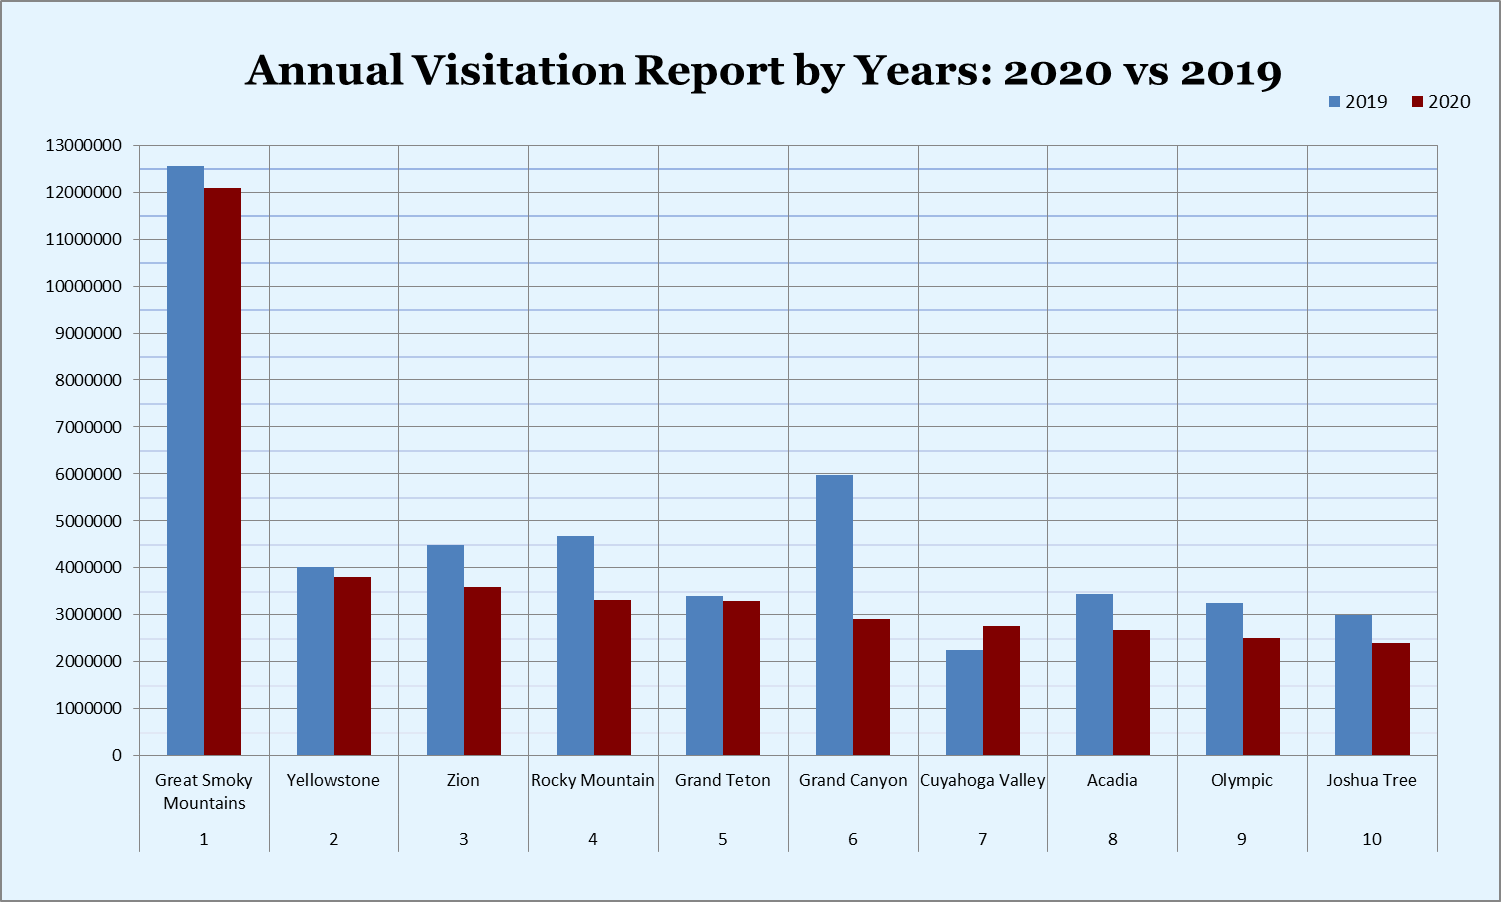 Annual Visitation Report By Years 2019-2020